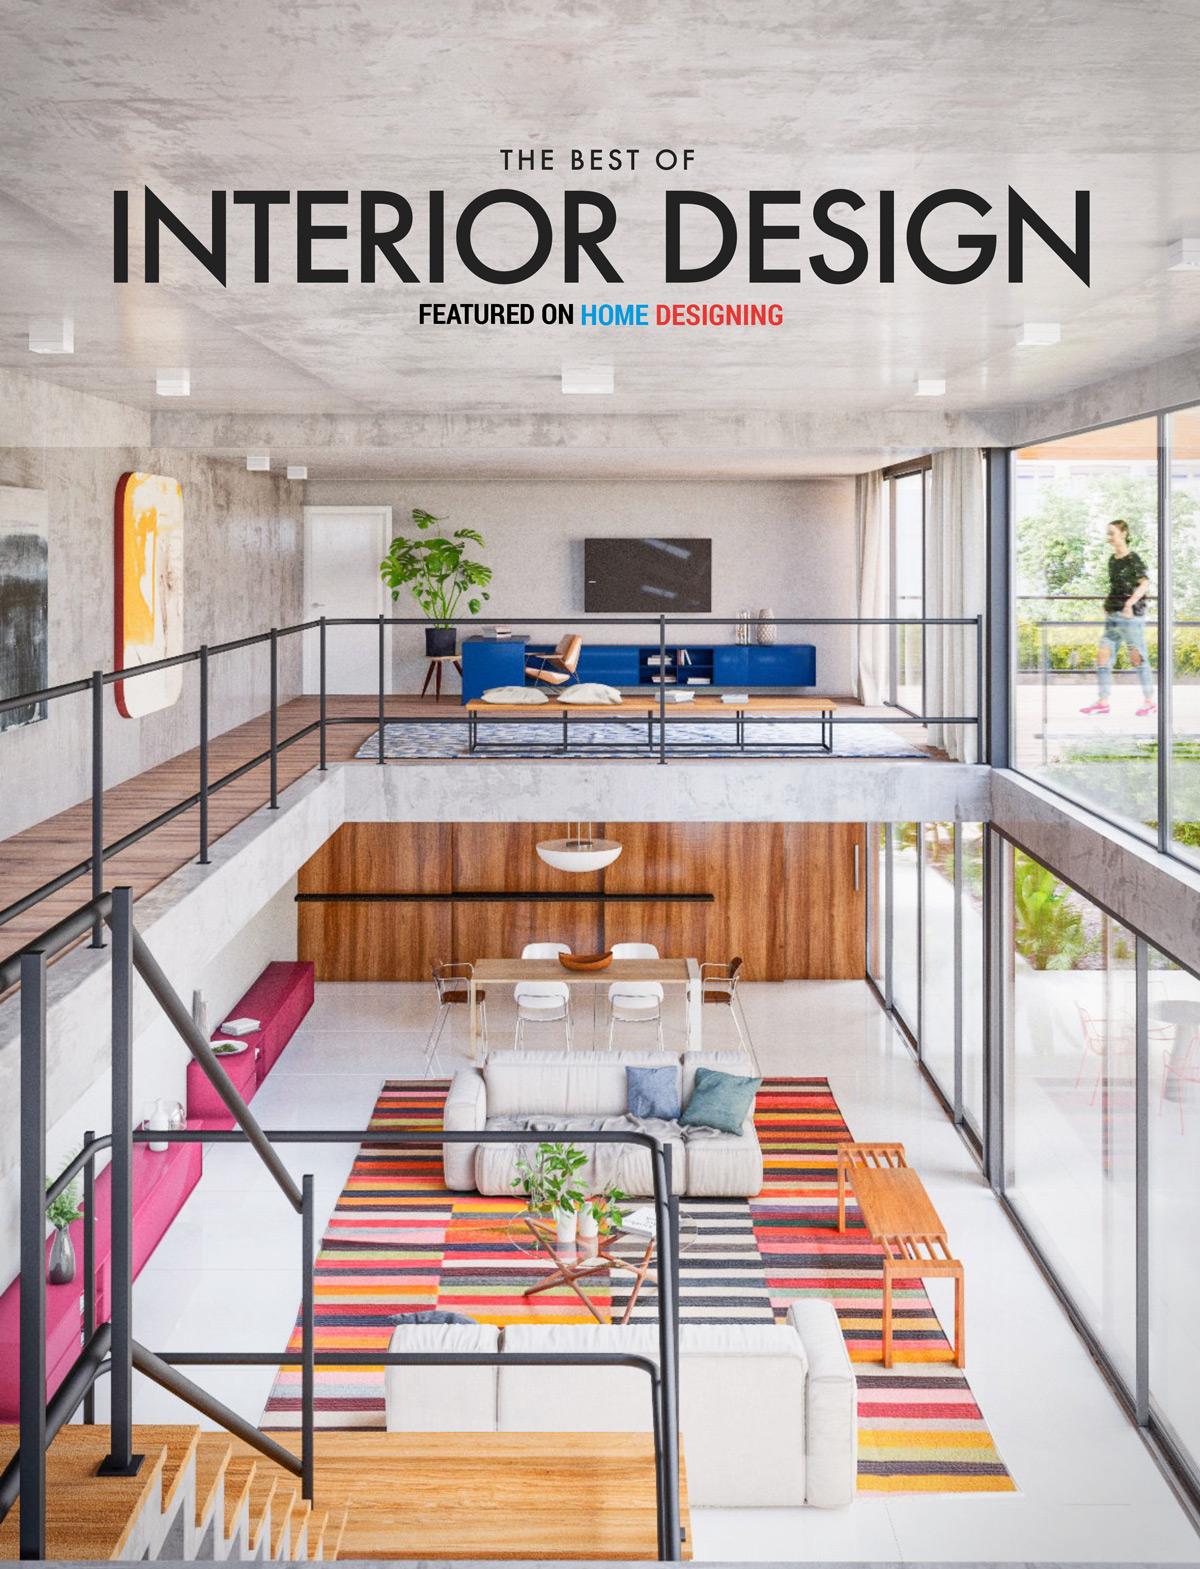 Free interior design ebook the best of interior design for Interior design and decoration textbook